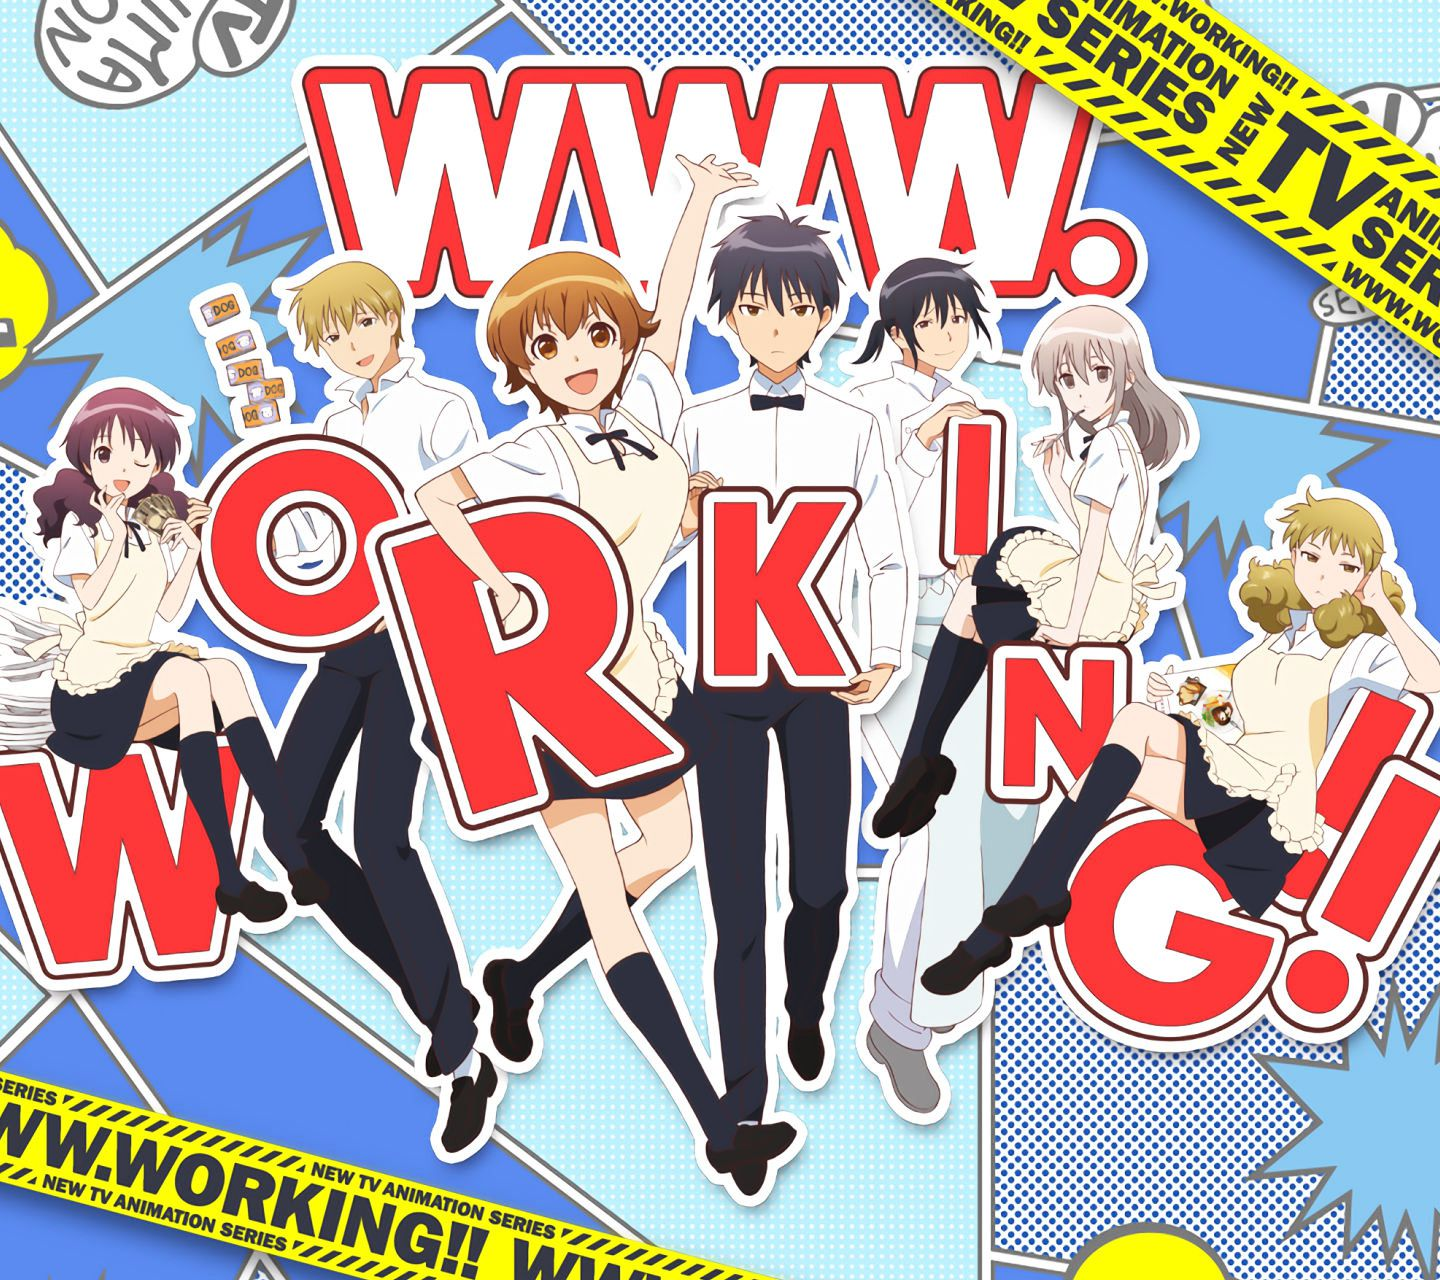 WWW.WORKING!!-Android壁紙